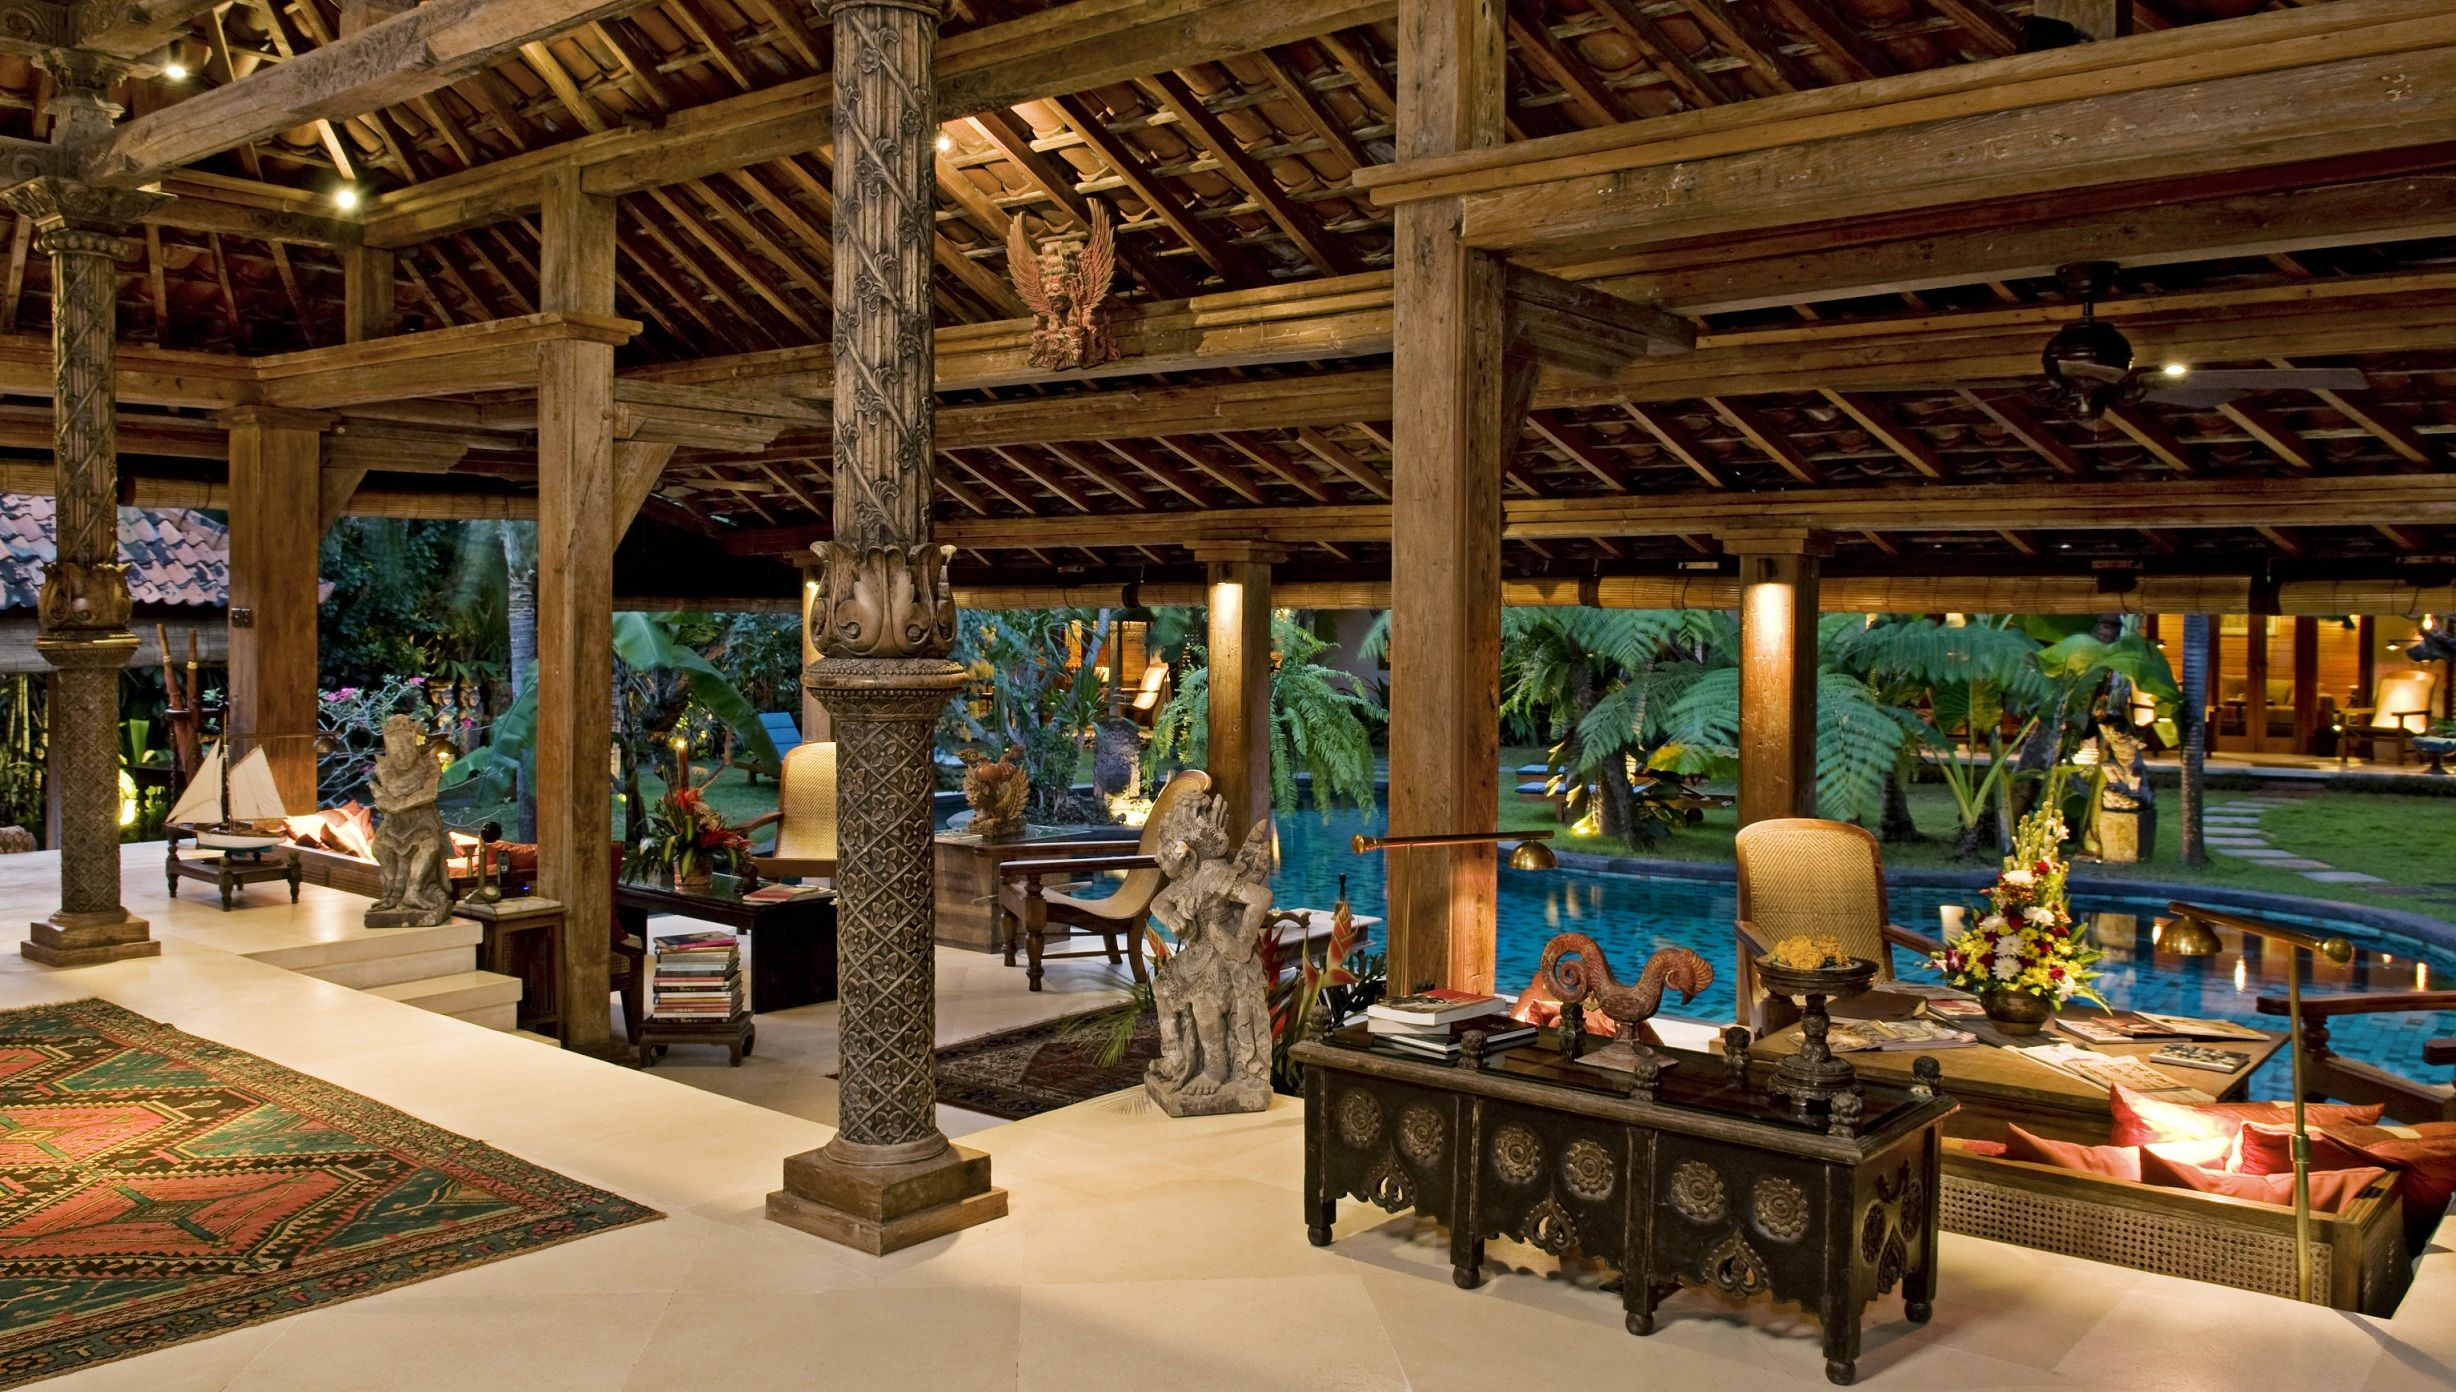 Balinese house designs and floor plans tropical bali style pinterest balinese house and - Balinese home decorating ideas ...